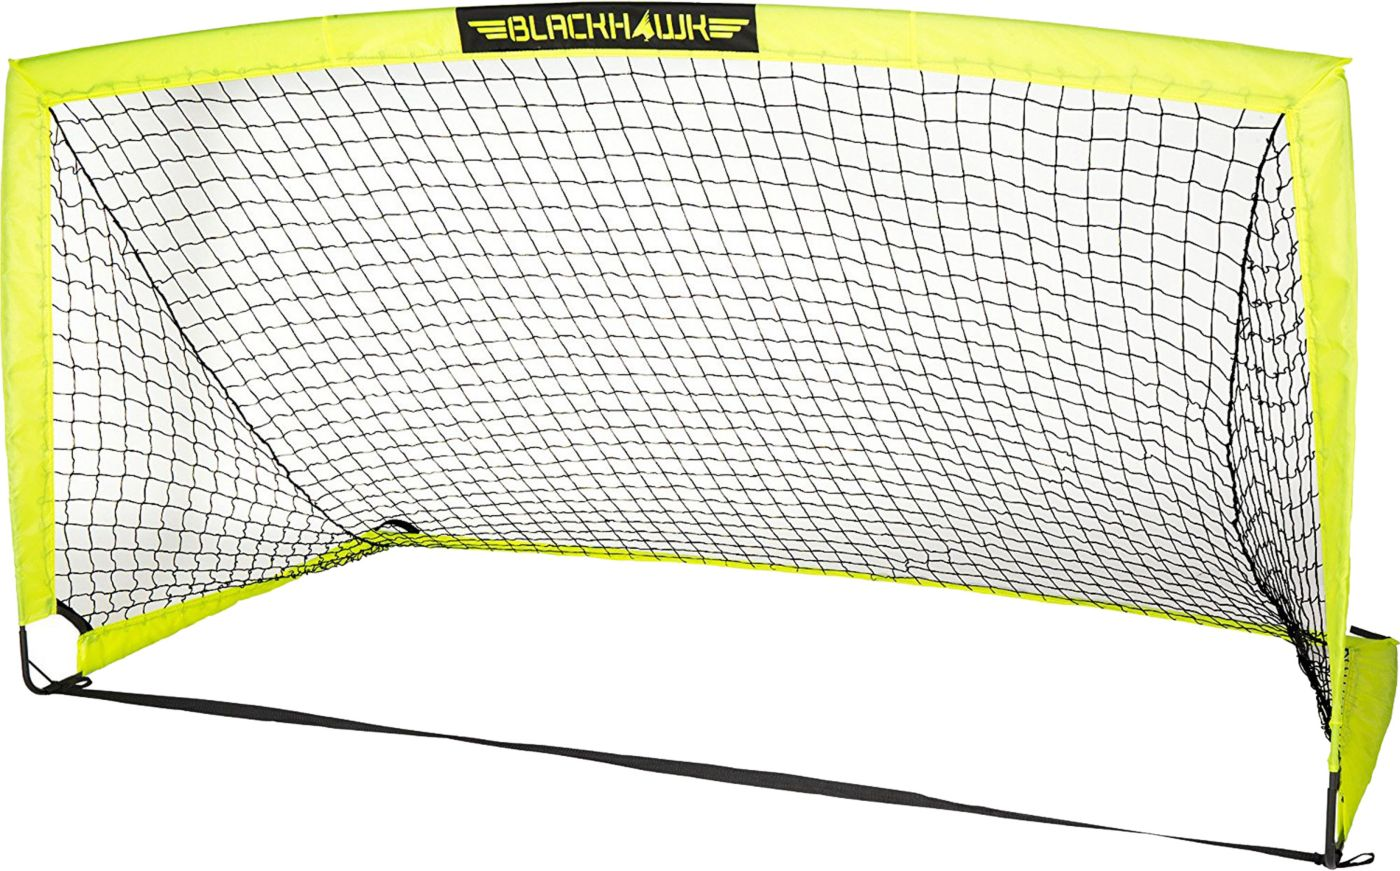 Franklin 12' x 6' Blackhawk Portable Soccer Goal